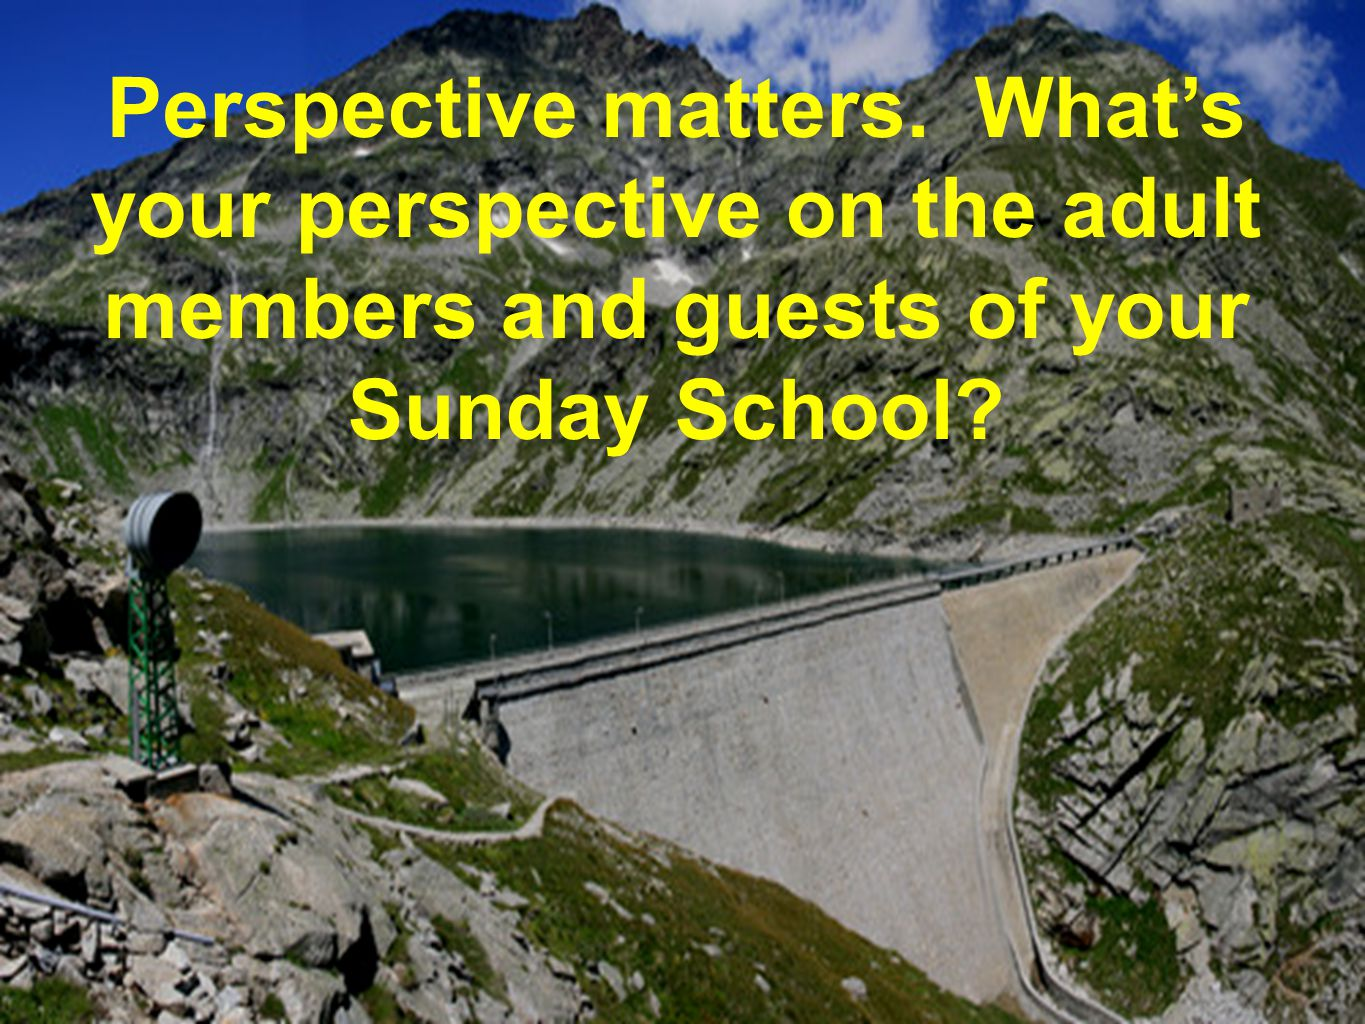 Perspective matters. What's your perspective on the adult members and guests of your Sunday School?